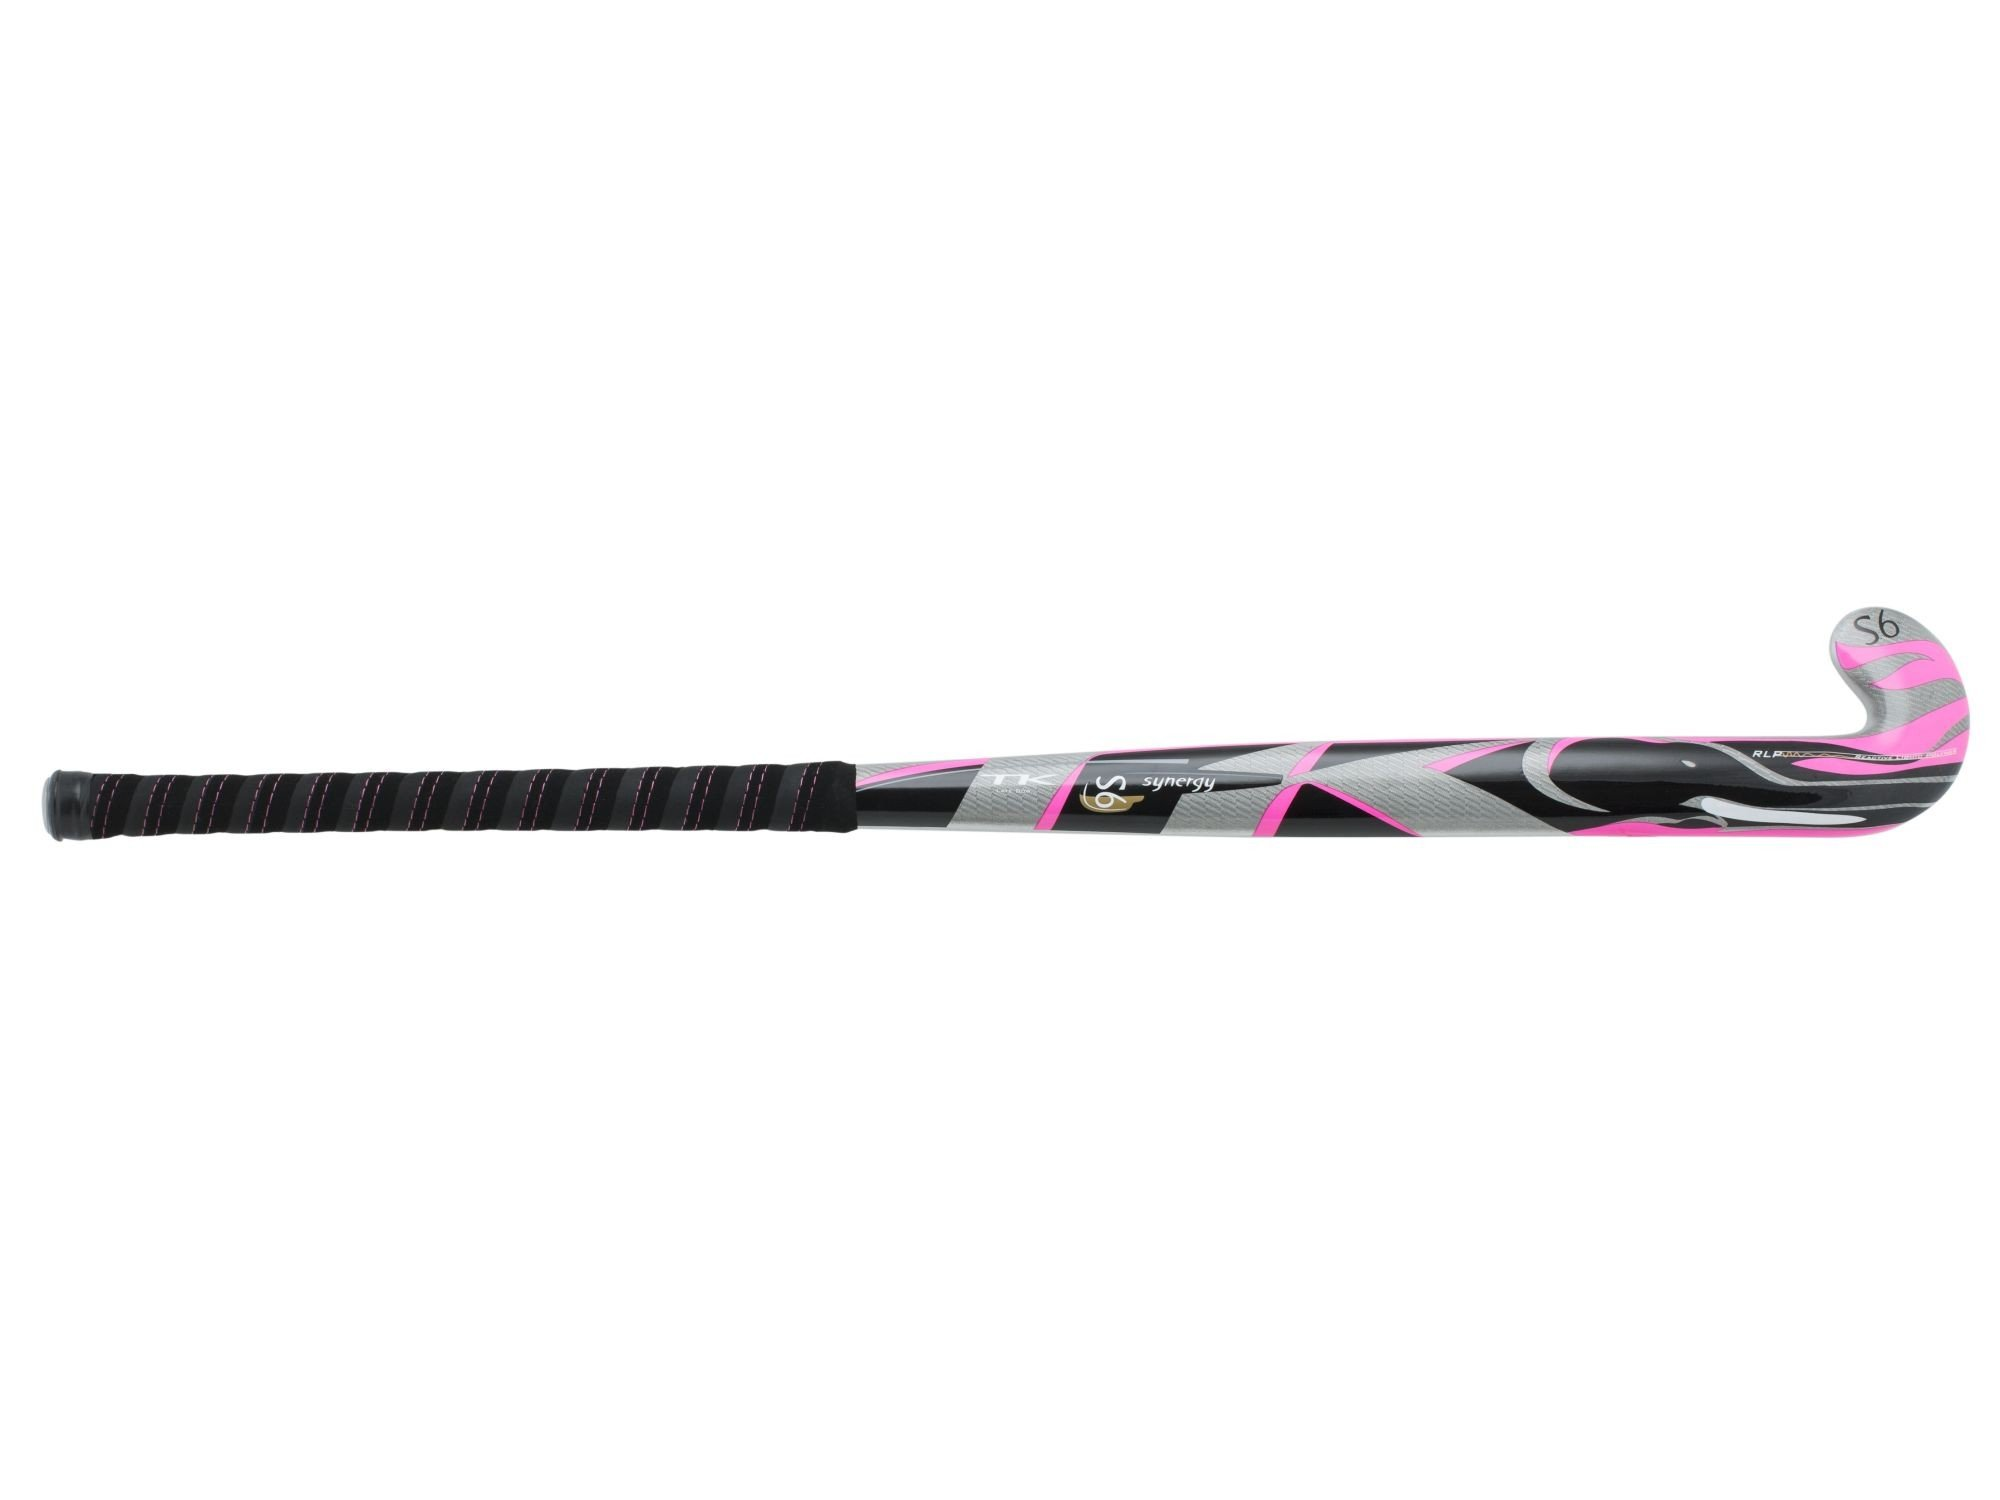 2016/17 TK Synergy Series S6 Hockey Stick